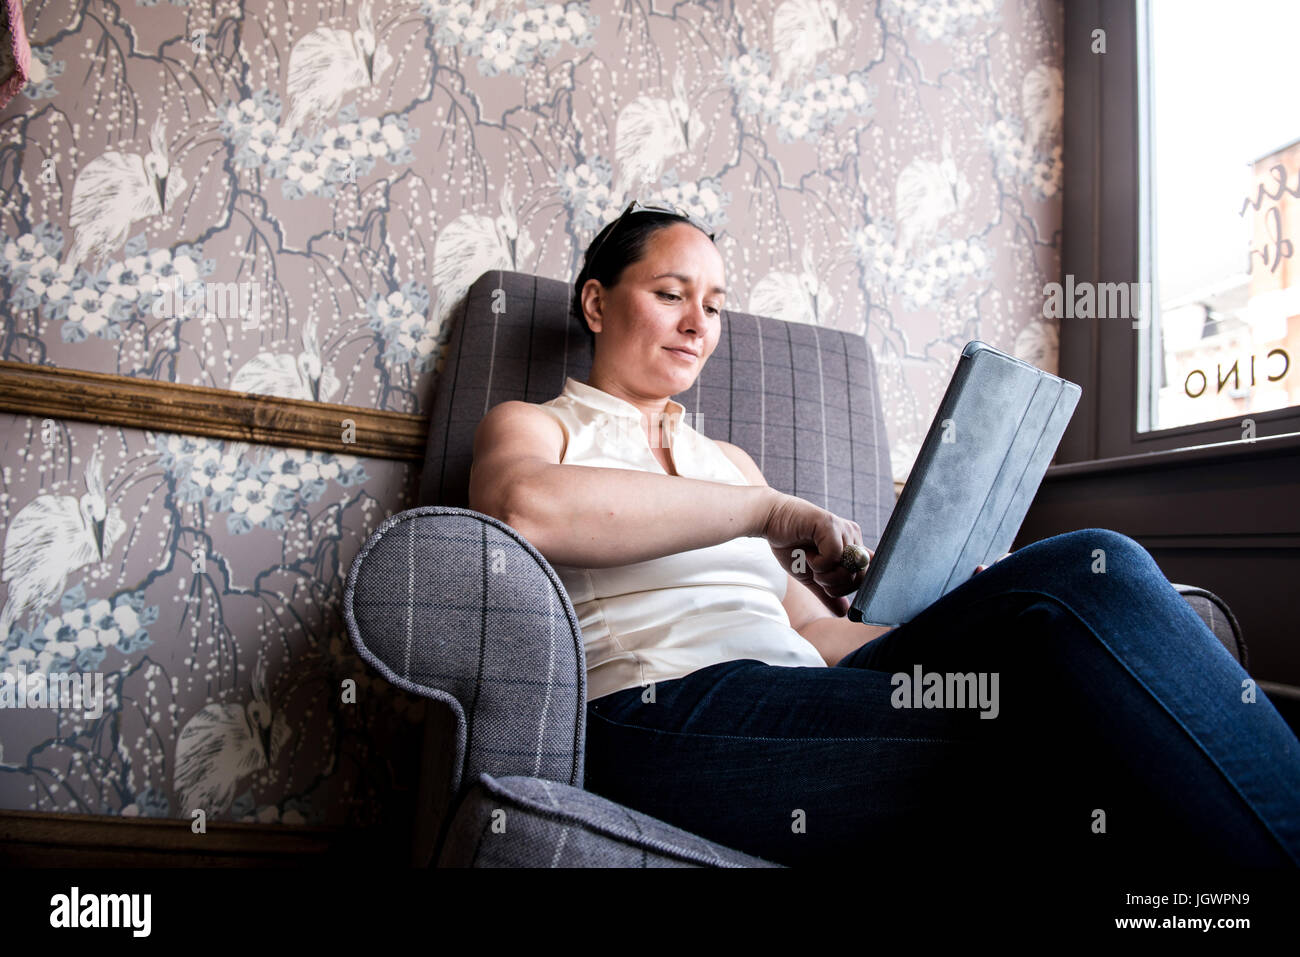 Businesswoman working on laptop in coffee bar - Stock Image